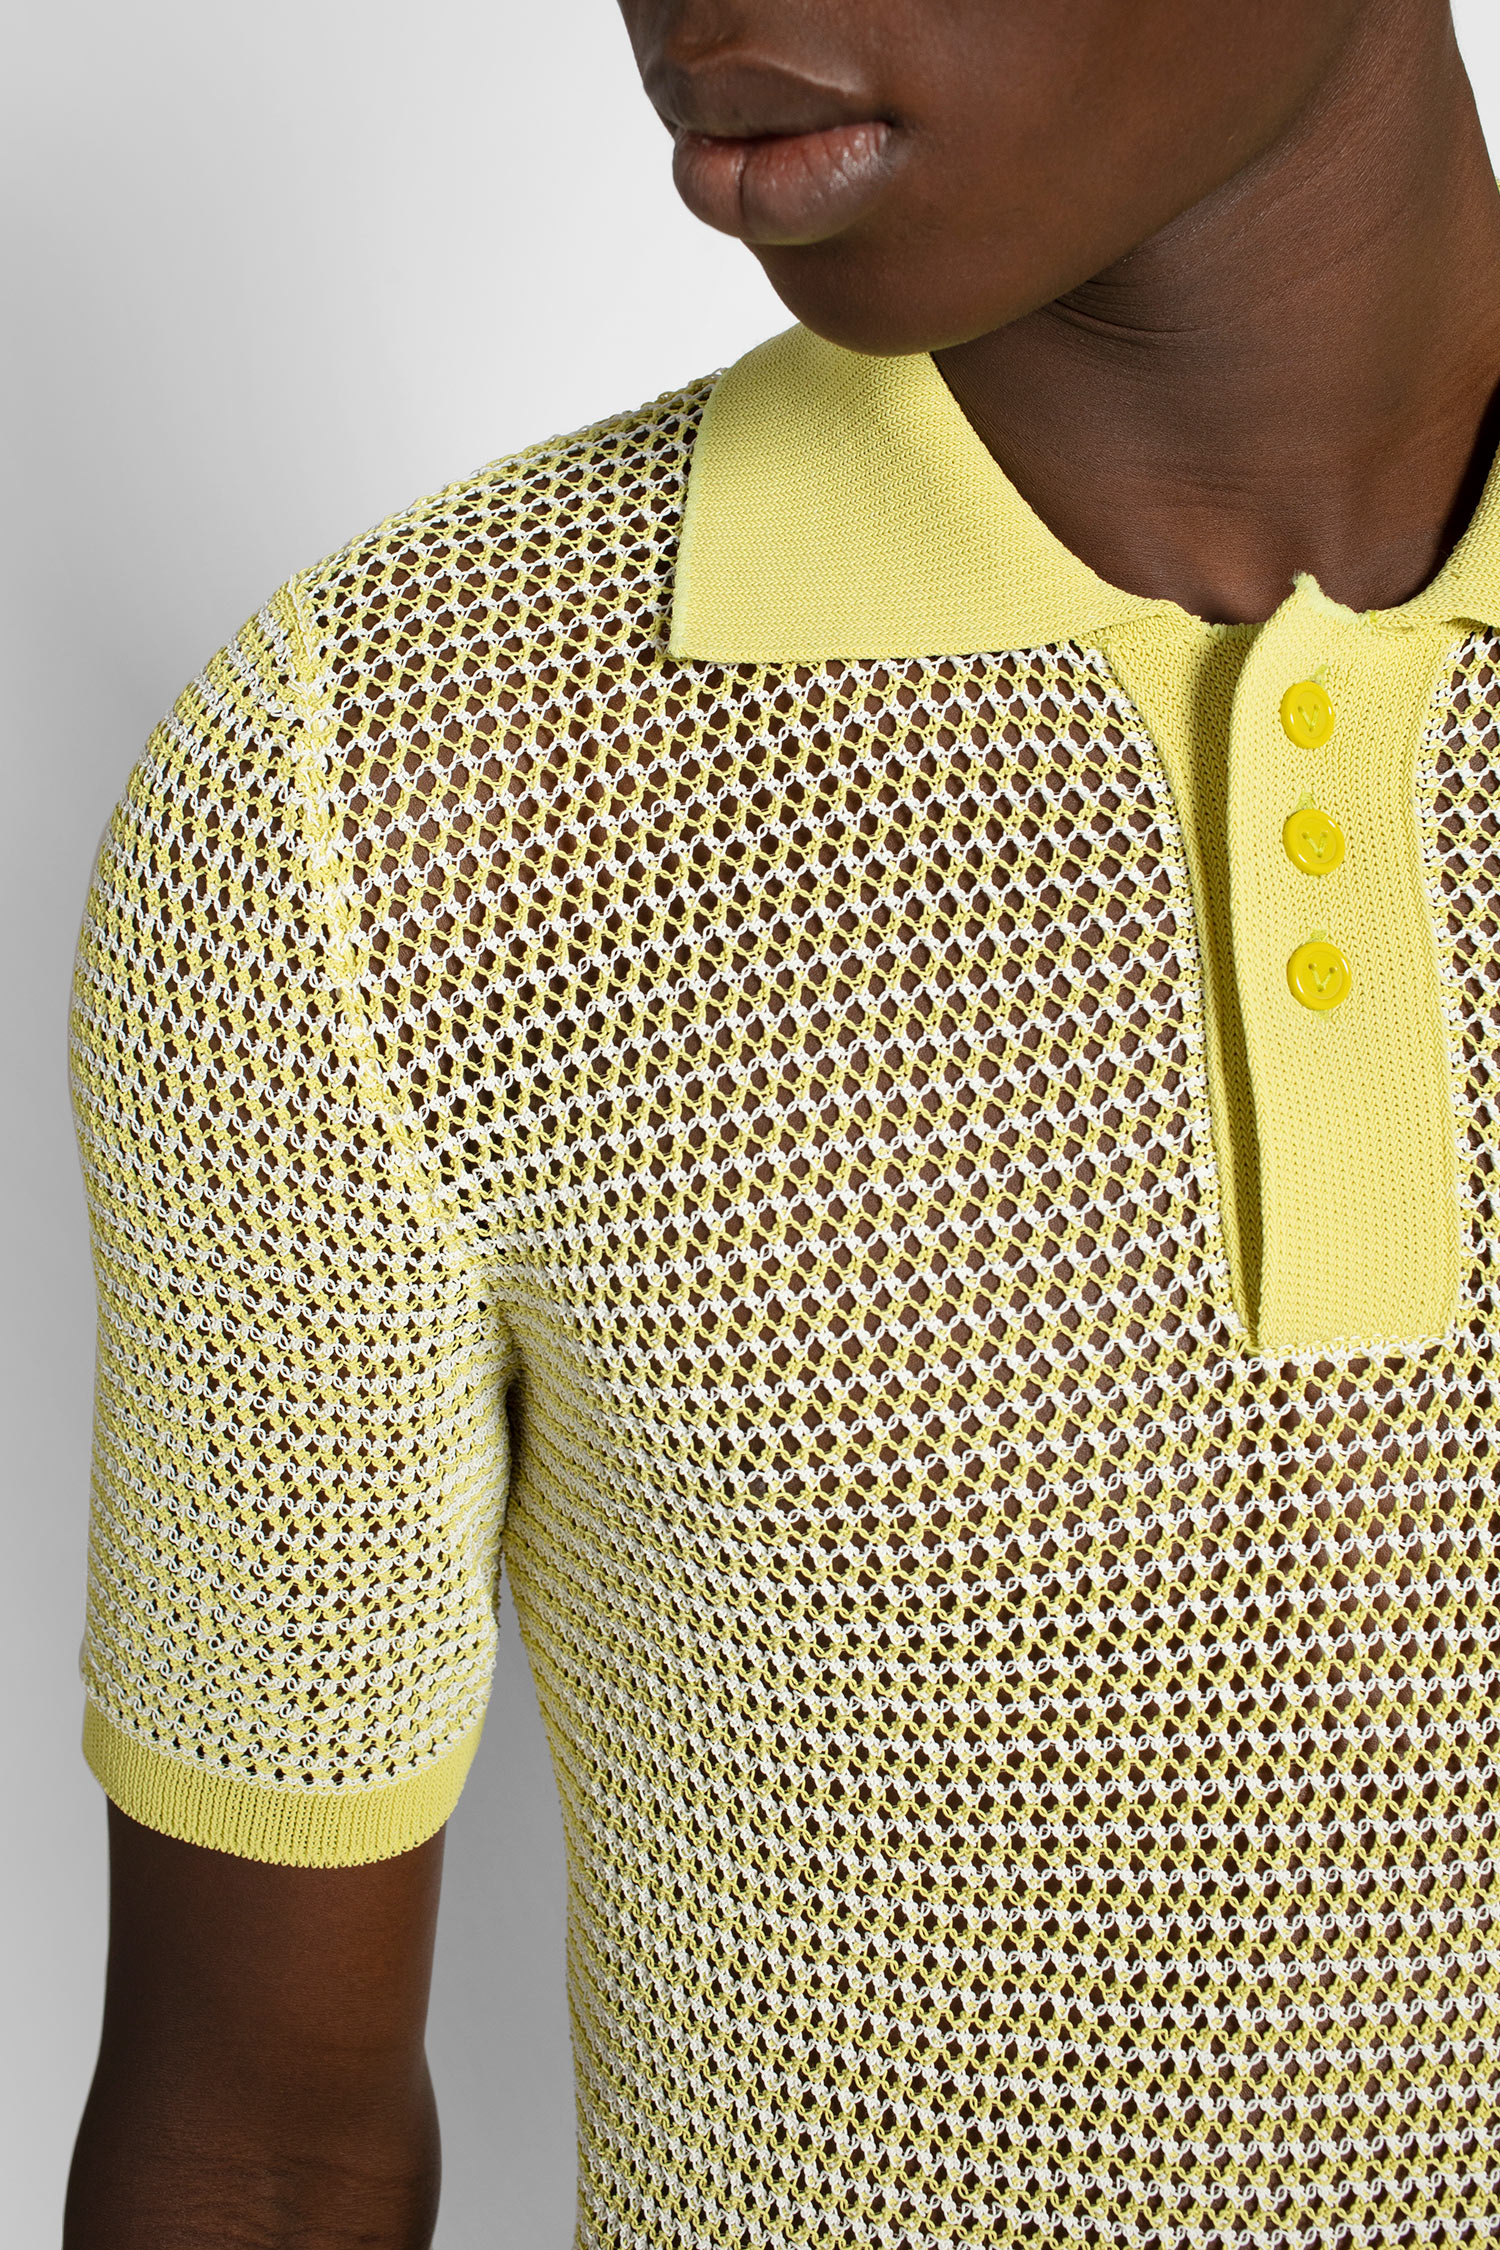 Original original bottega veneta shirt